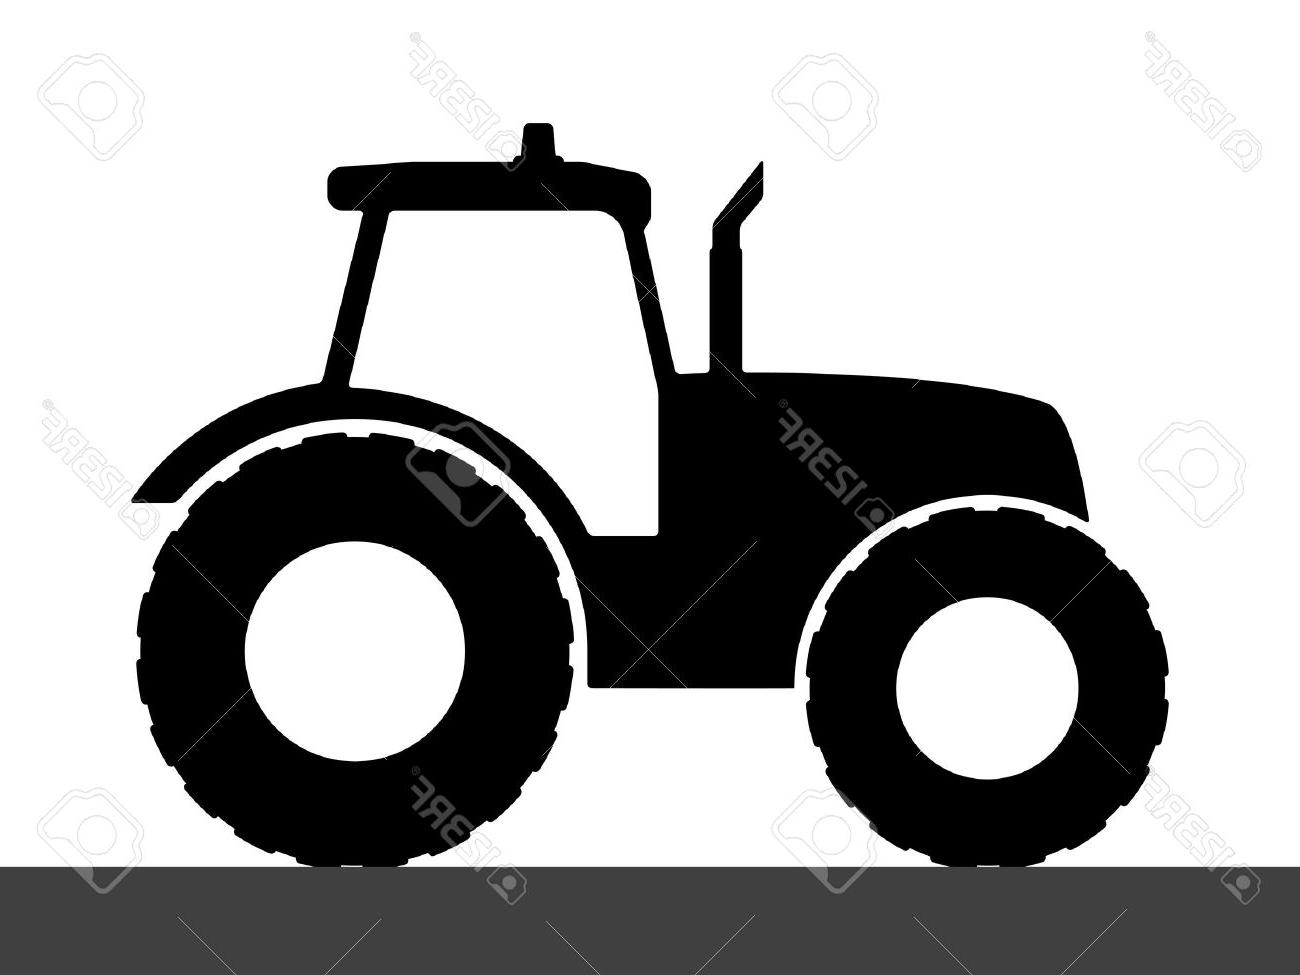 Best Tractor Silhouette Image » Free Vector Art, Images.